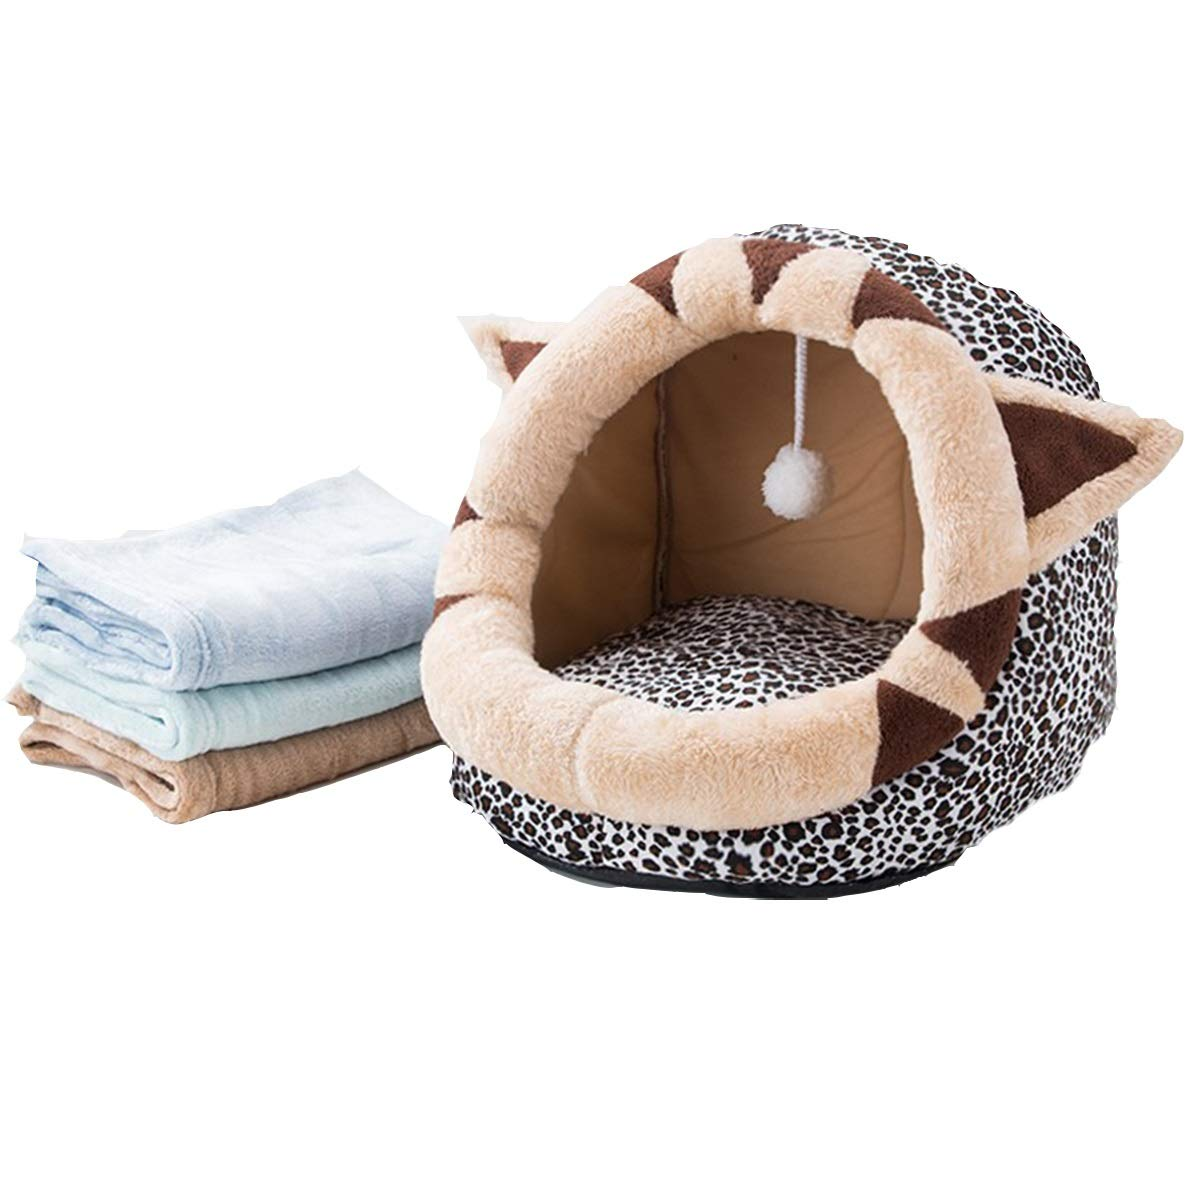 BlackWhite L BlackWhite L Cat Litter, Four Seasons Universal Closed Summer Cat House, Kennel, Cat Mat Washable, Summer Pet Supplies, Three-dimensional Pet Nest, Sleep And Play One Fun Pet Nest, With Towels 2 Optional